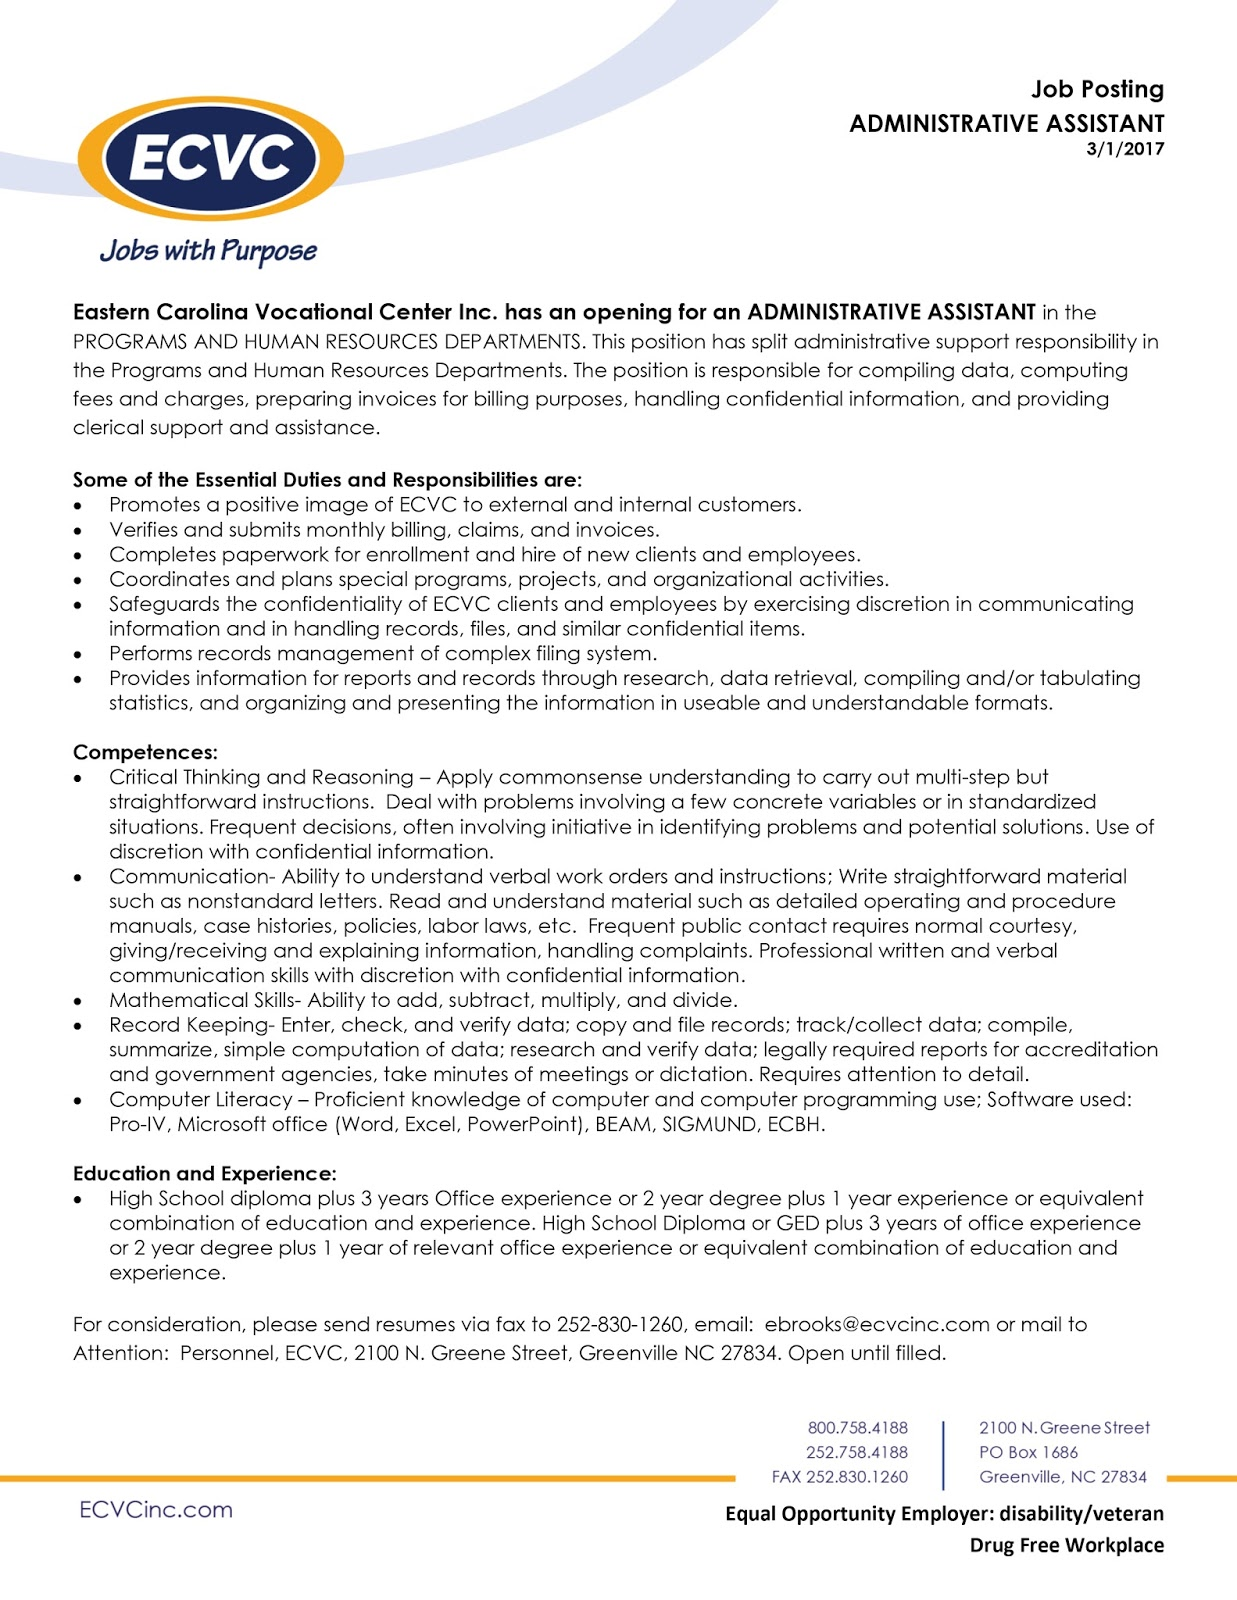 Pcc Career Readiness Certificate March 2017